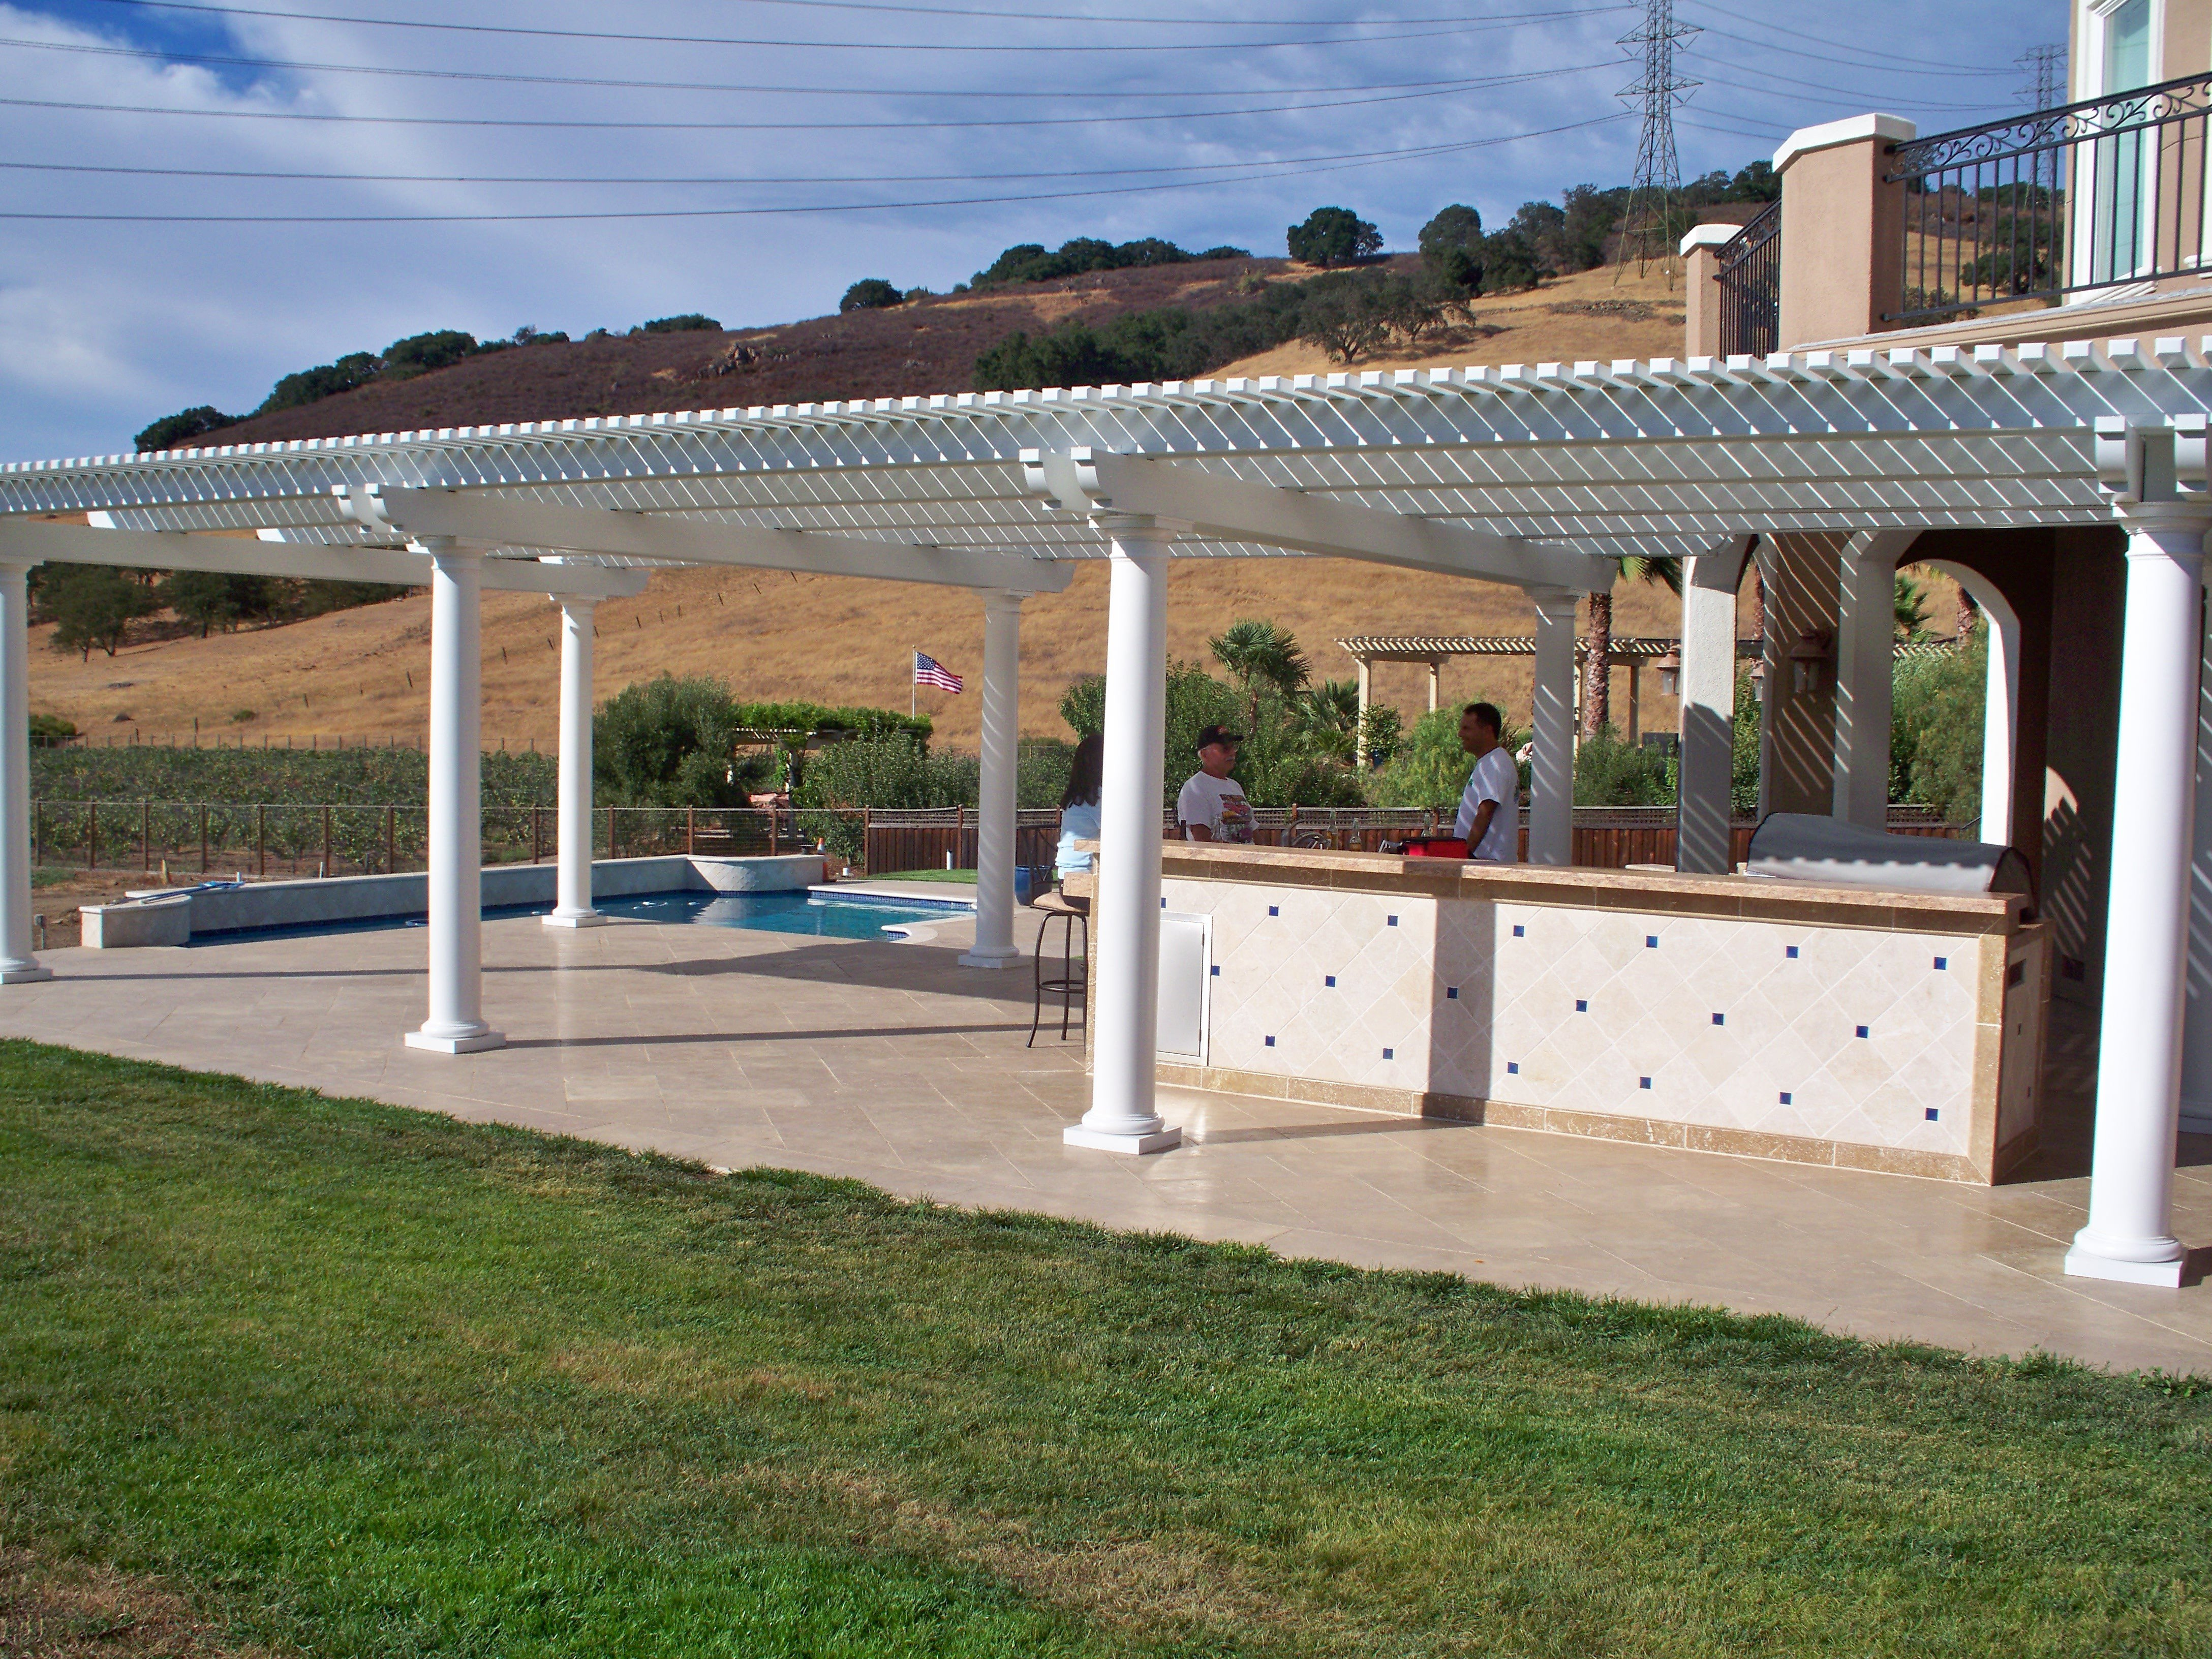 Lattice Patio Covers Allow You To Select The Amount Of Shade Or Sunlight  You Desire By Adjusting The Size And Spacing Of The Lattice Tubes.